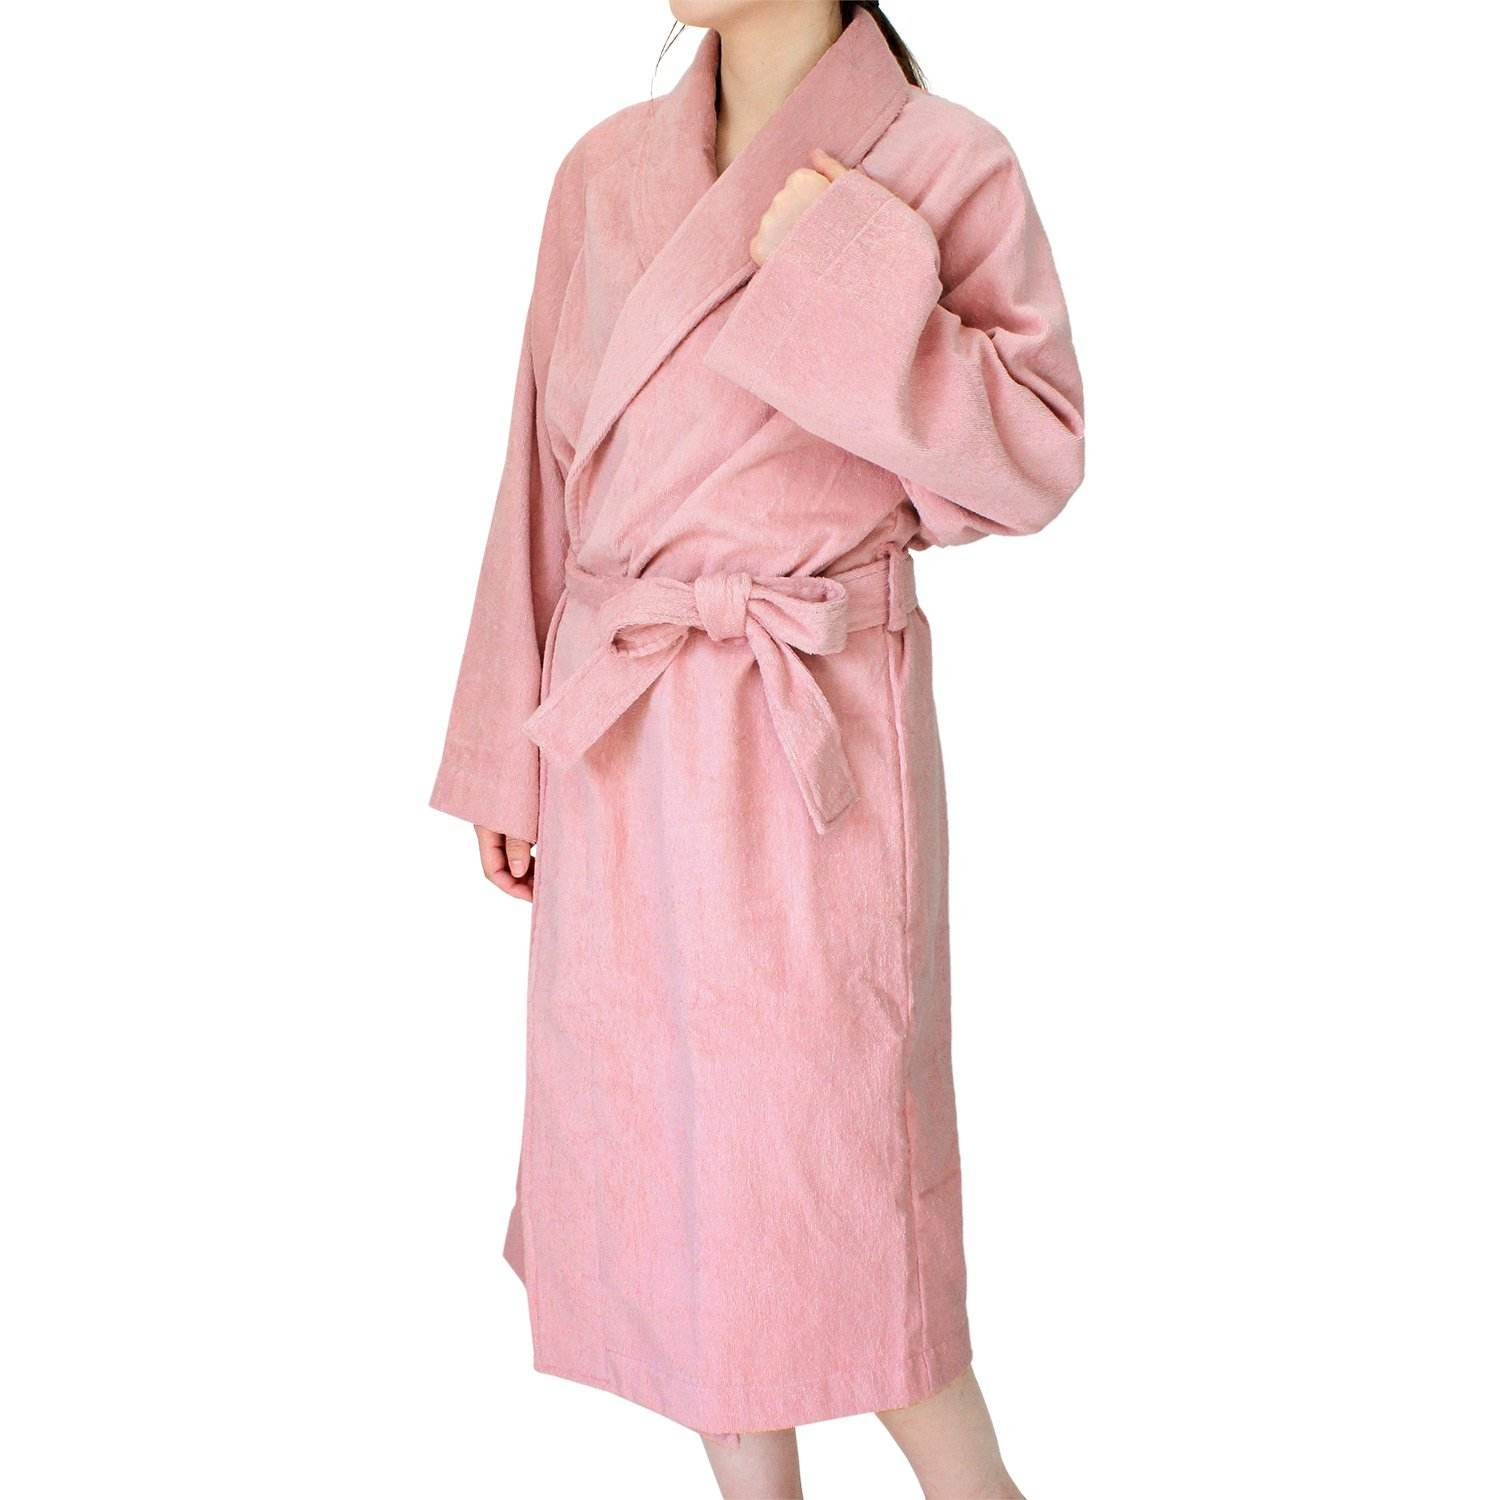 Cotton towel bath robe 109cm * 57cm unisex made in Japan terry cloth bath robe light pink